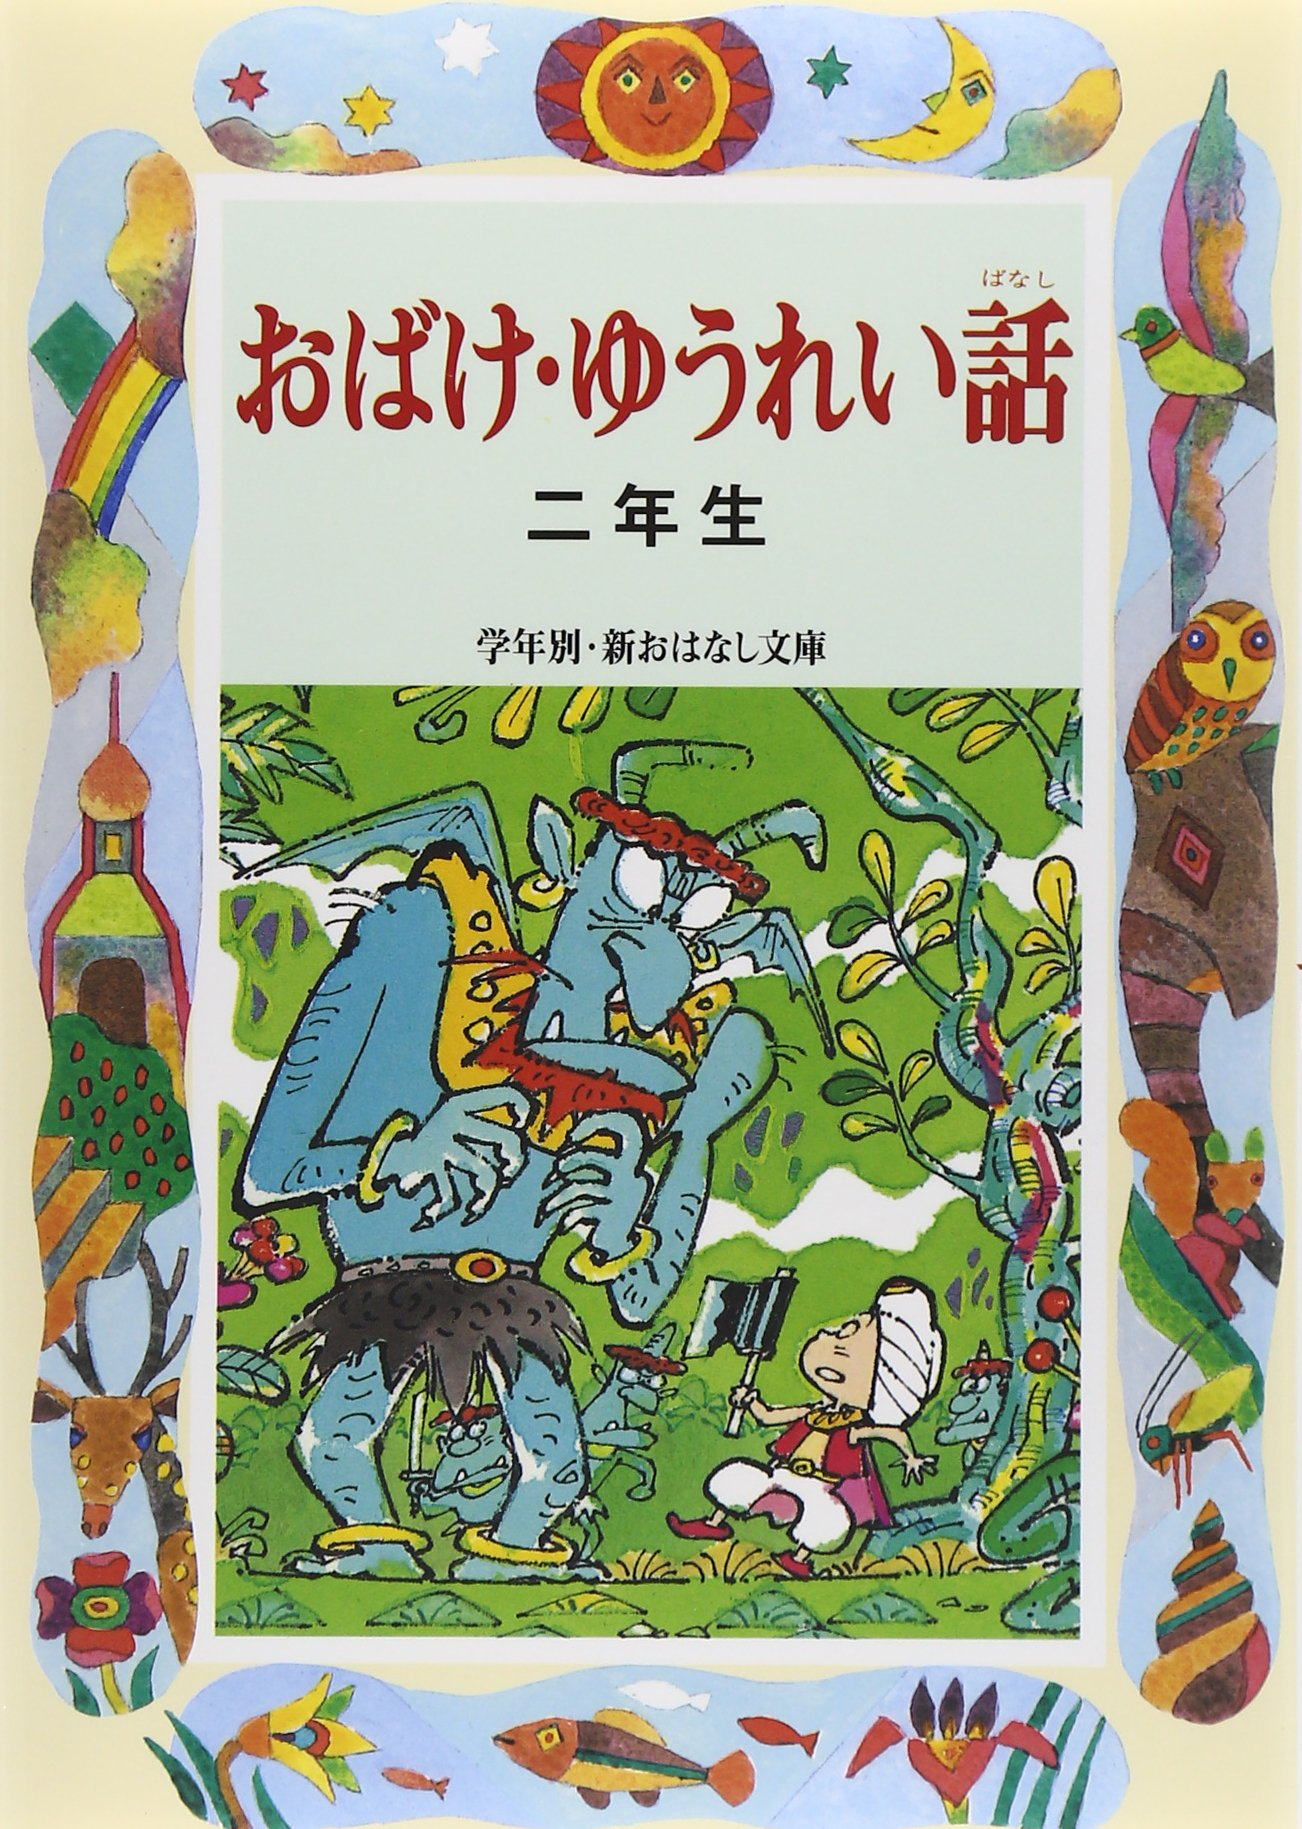 Read Online Sophomore ghost-ghost story (by grade and new story library) (2001) ISBN: 4039231805 [Japanese Import] PDF